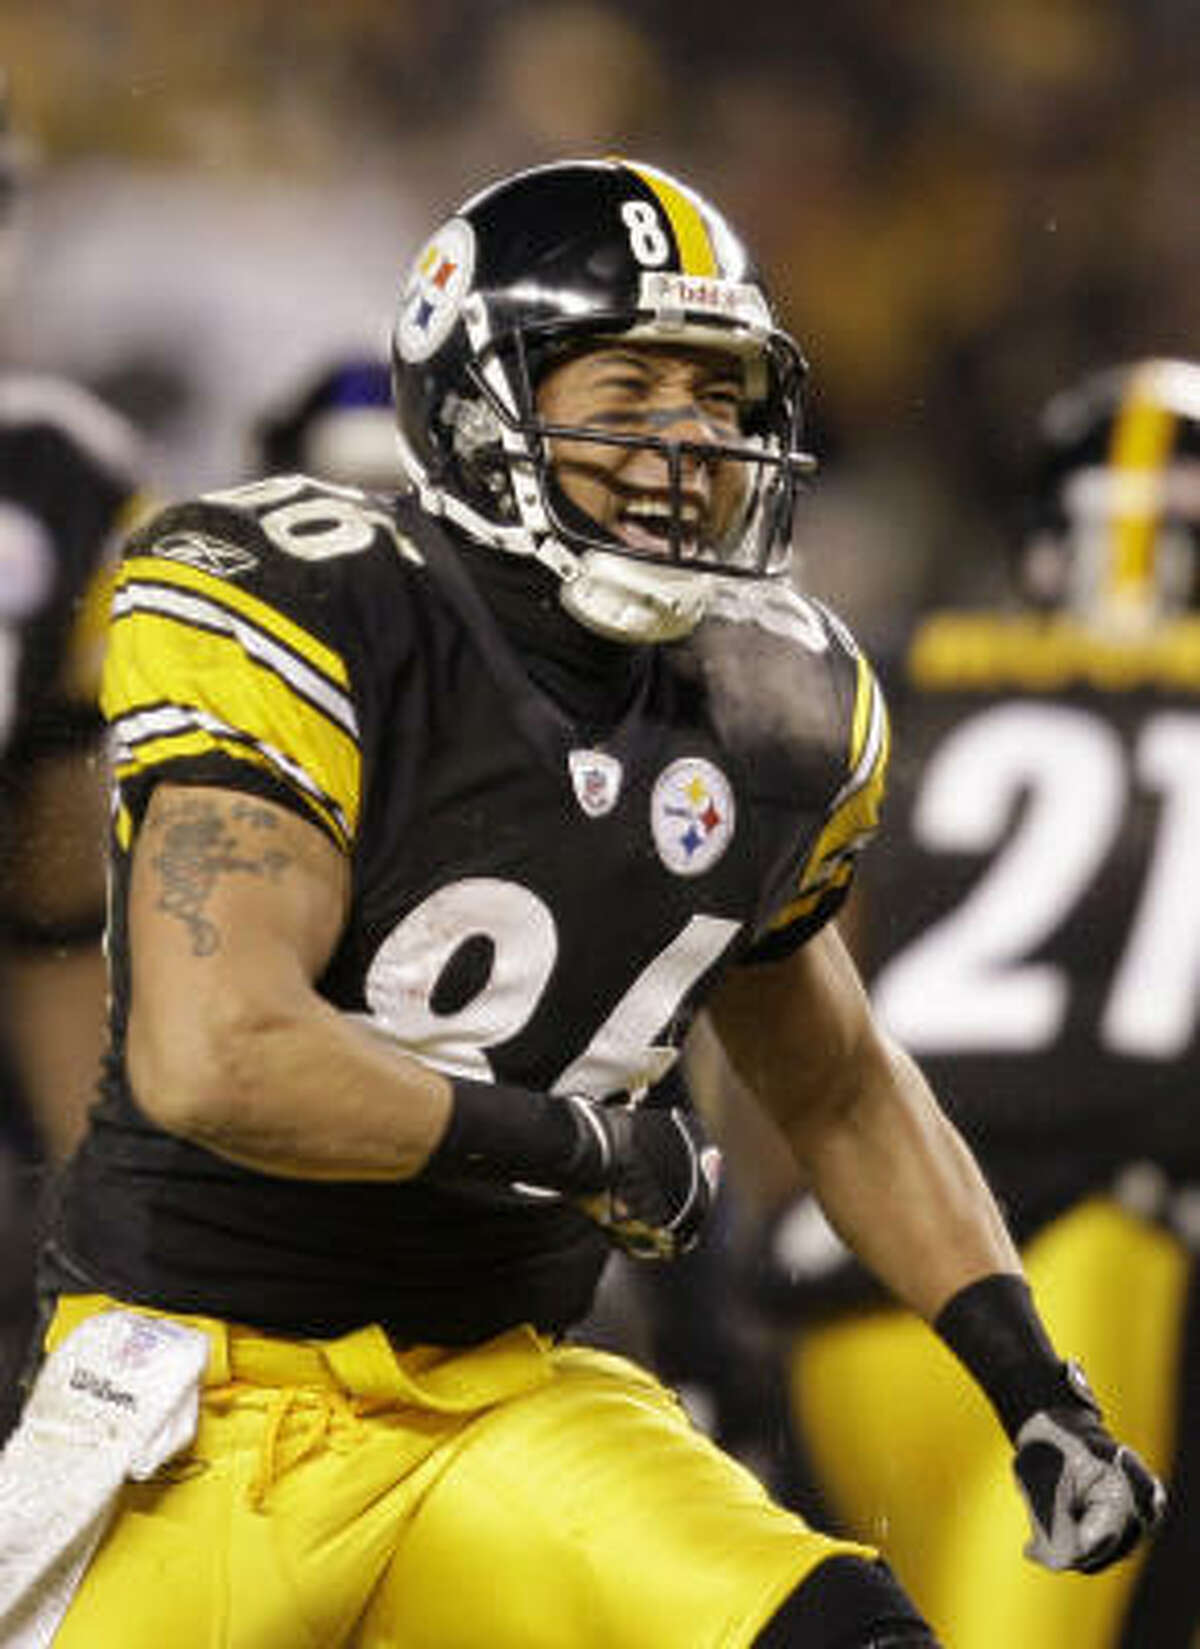 Pittsburgh receiver Hines Ward plays a physical style of football that meshes well with the Steelers.